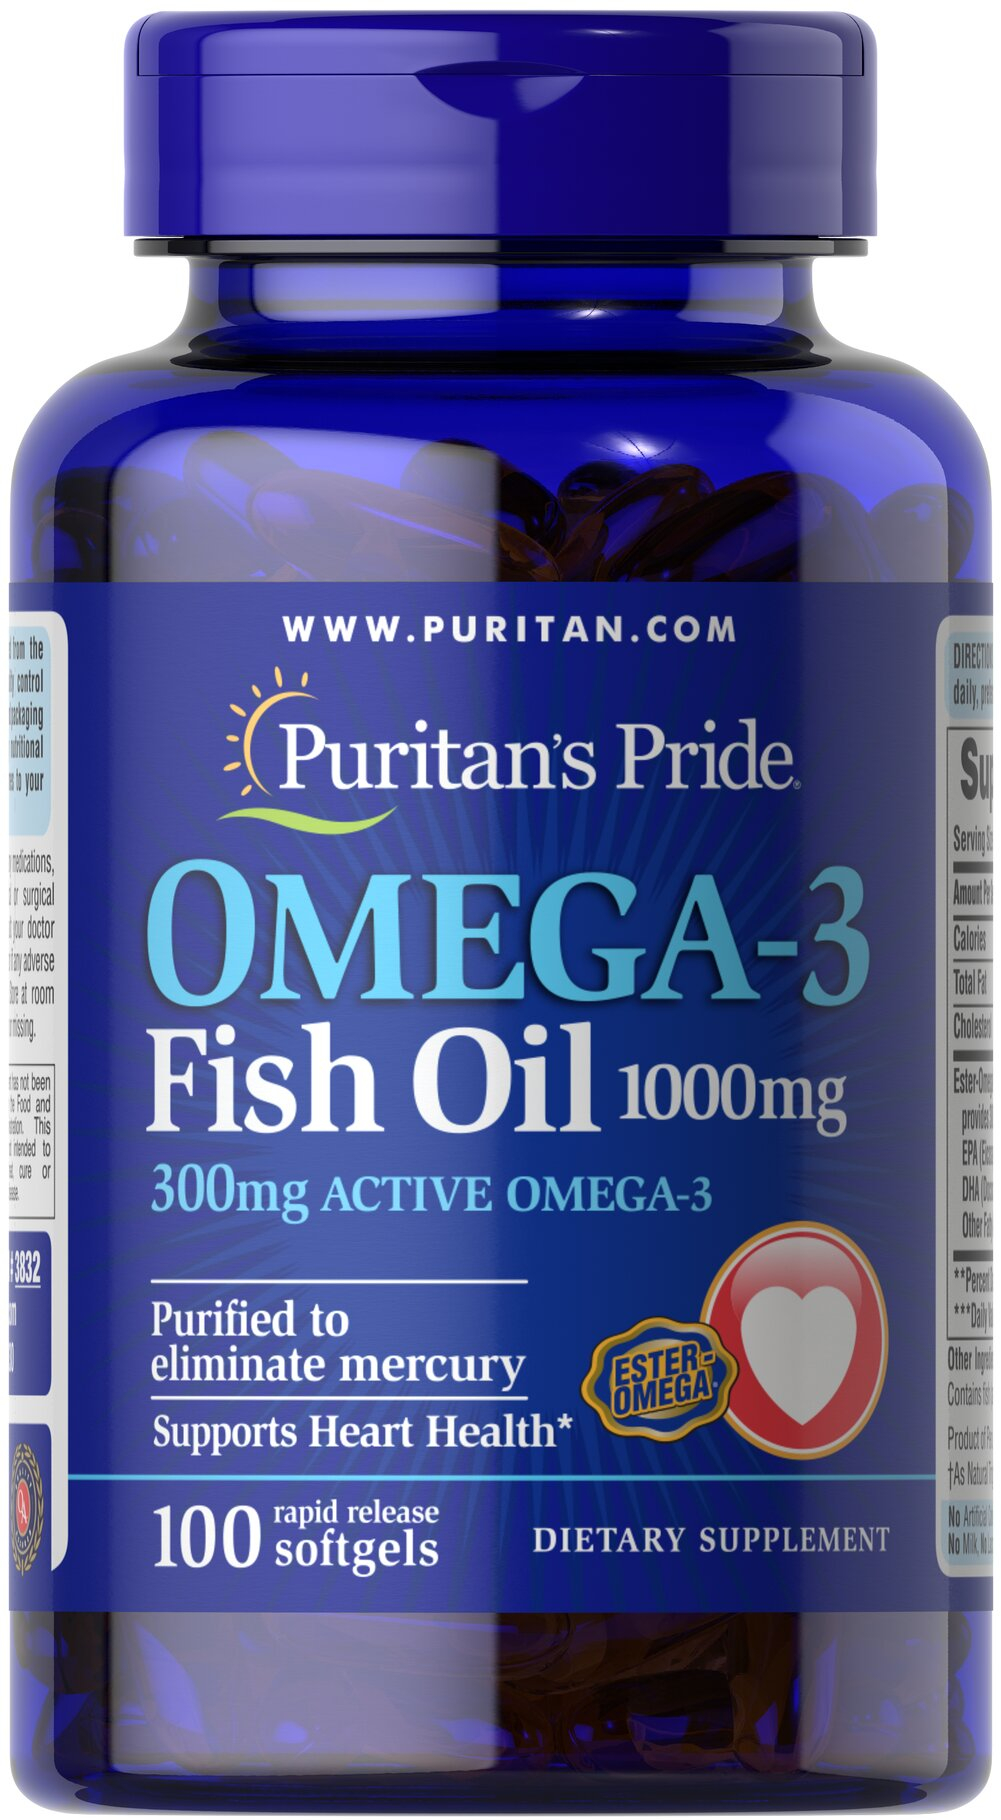 Omega-3 Fish Oil 1000 mg (300 mg Active Omega-3)  100 Softgels 1000 mg $12.49